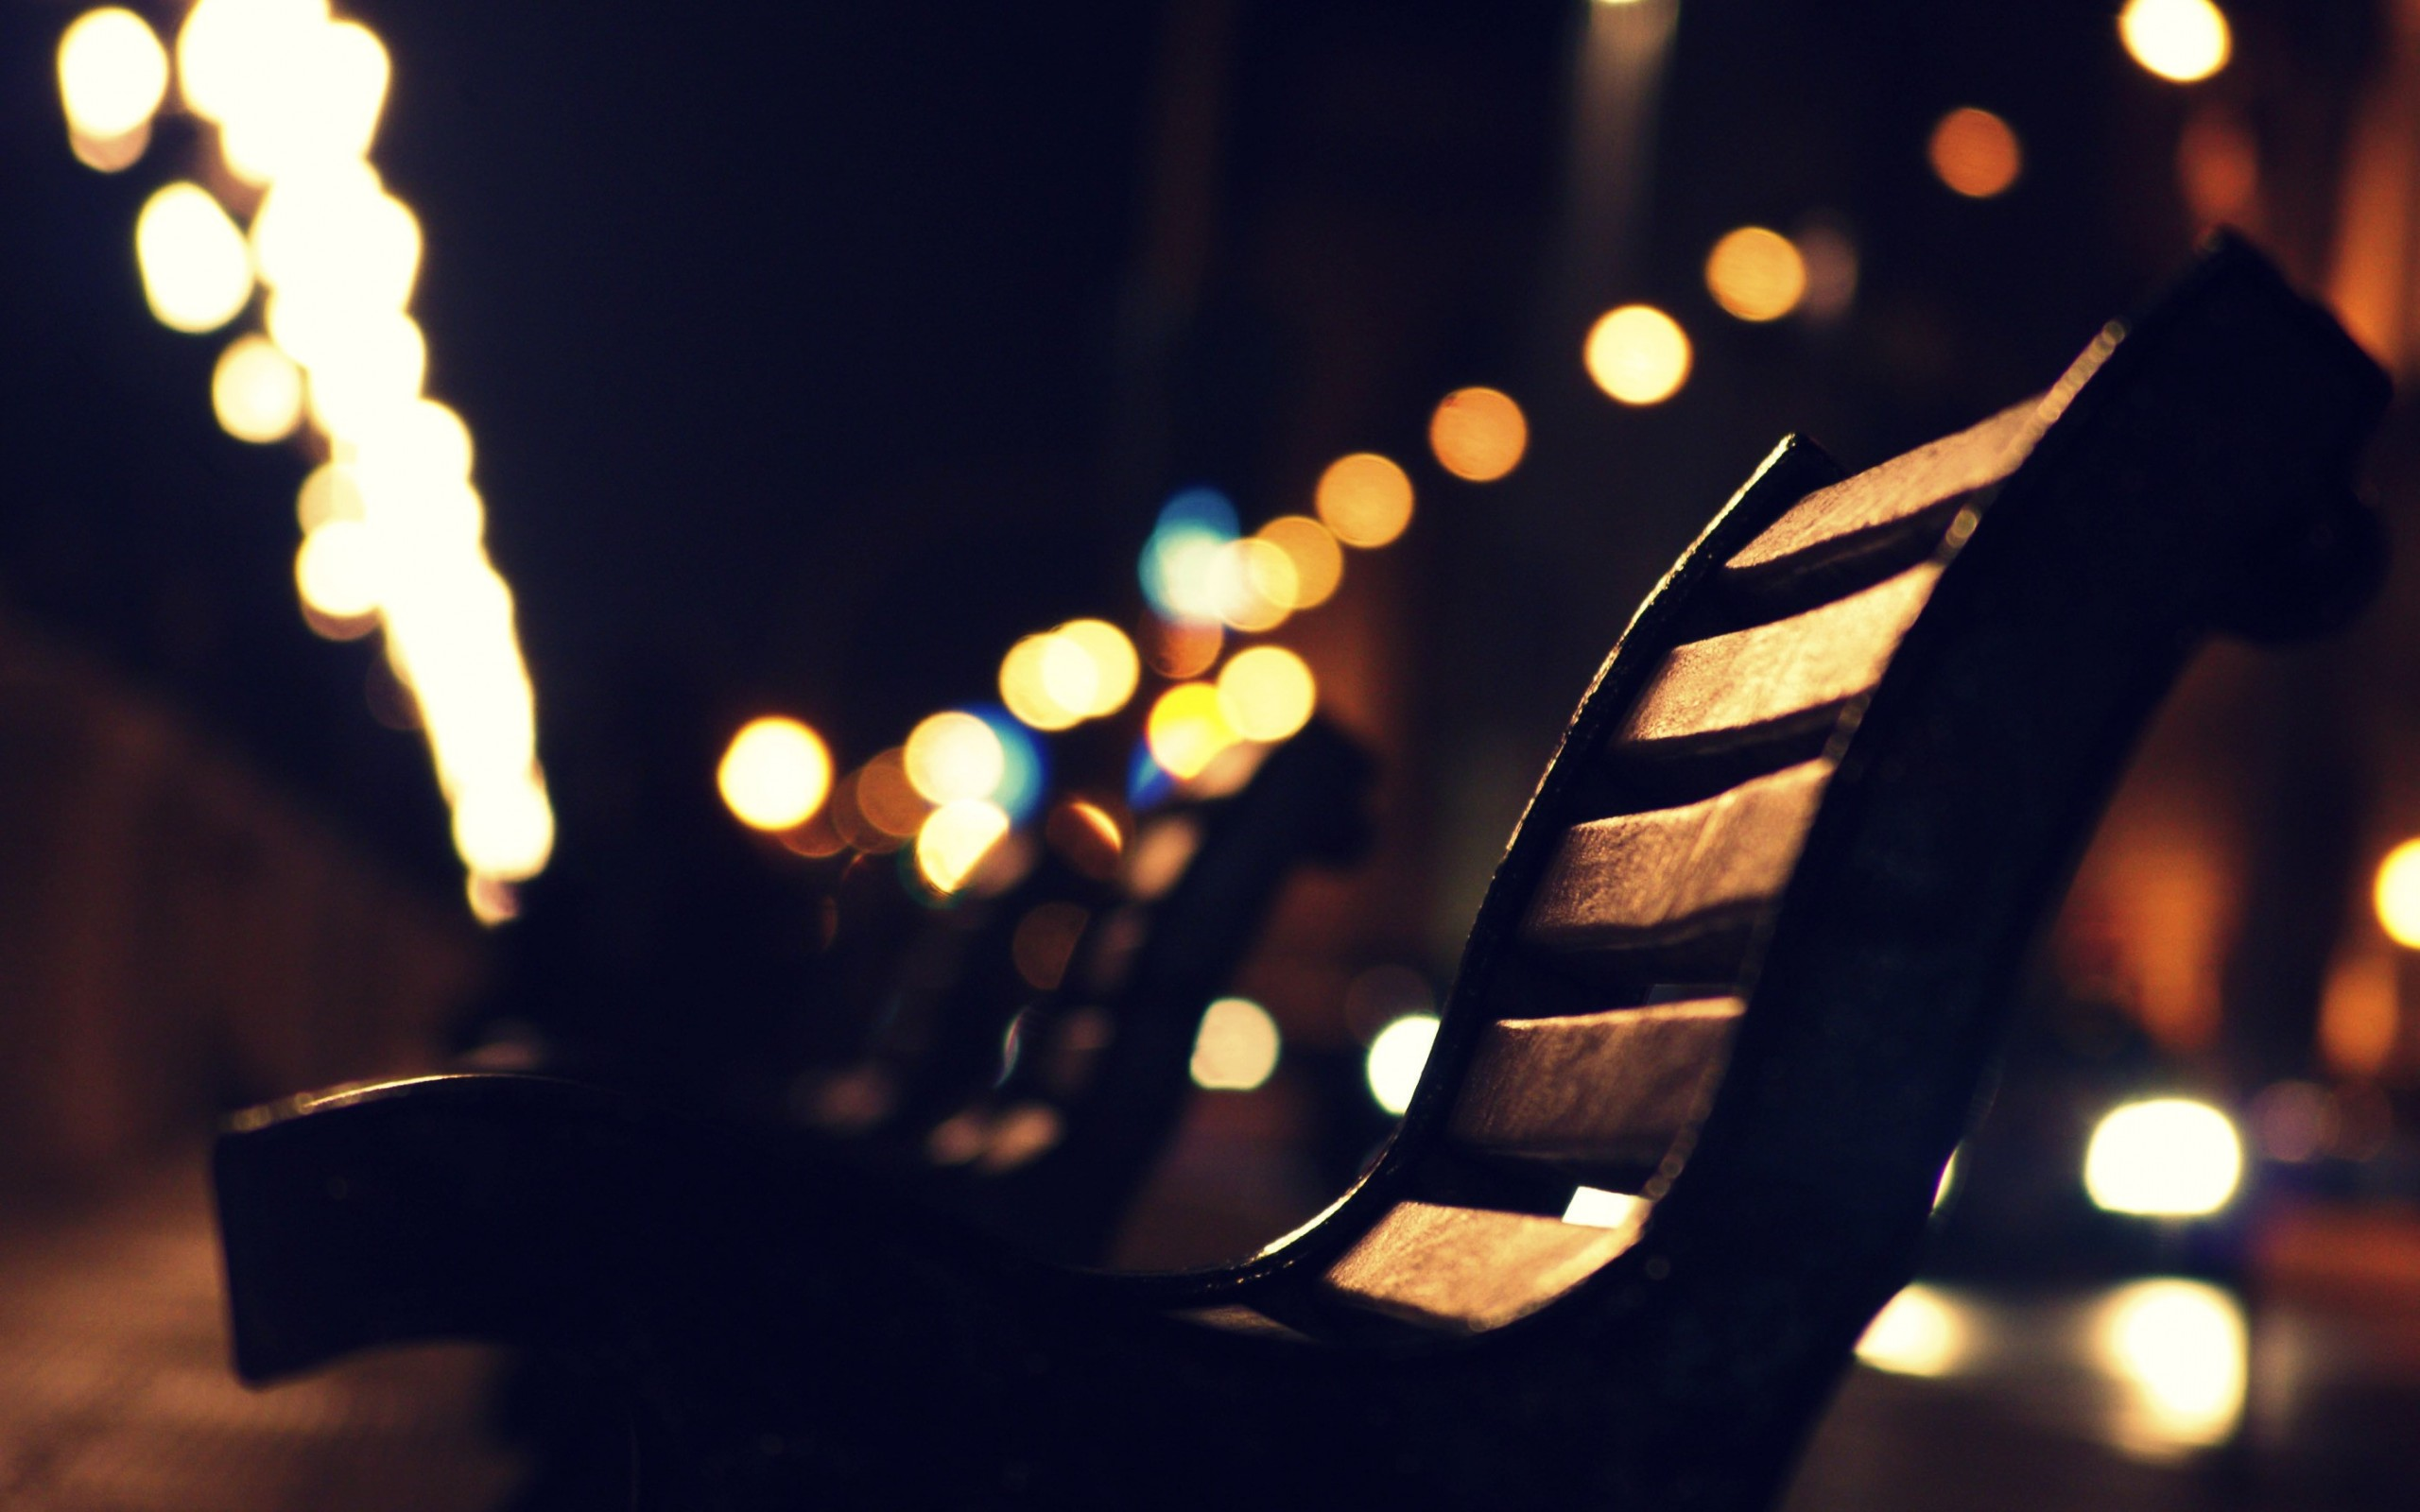 Chair And Bokeh Light Awesome Wallpaper